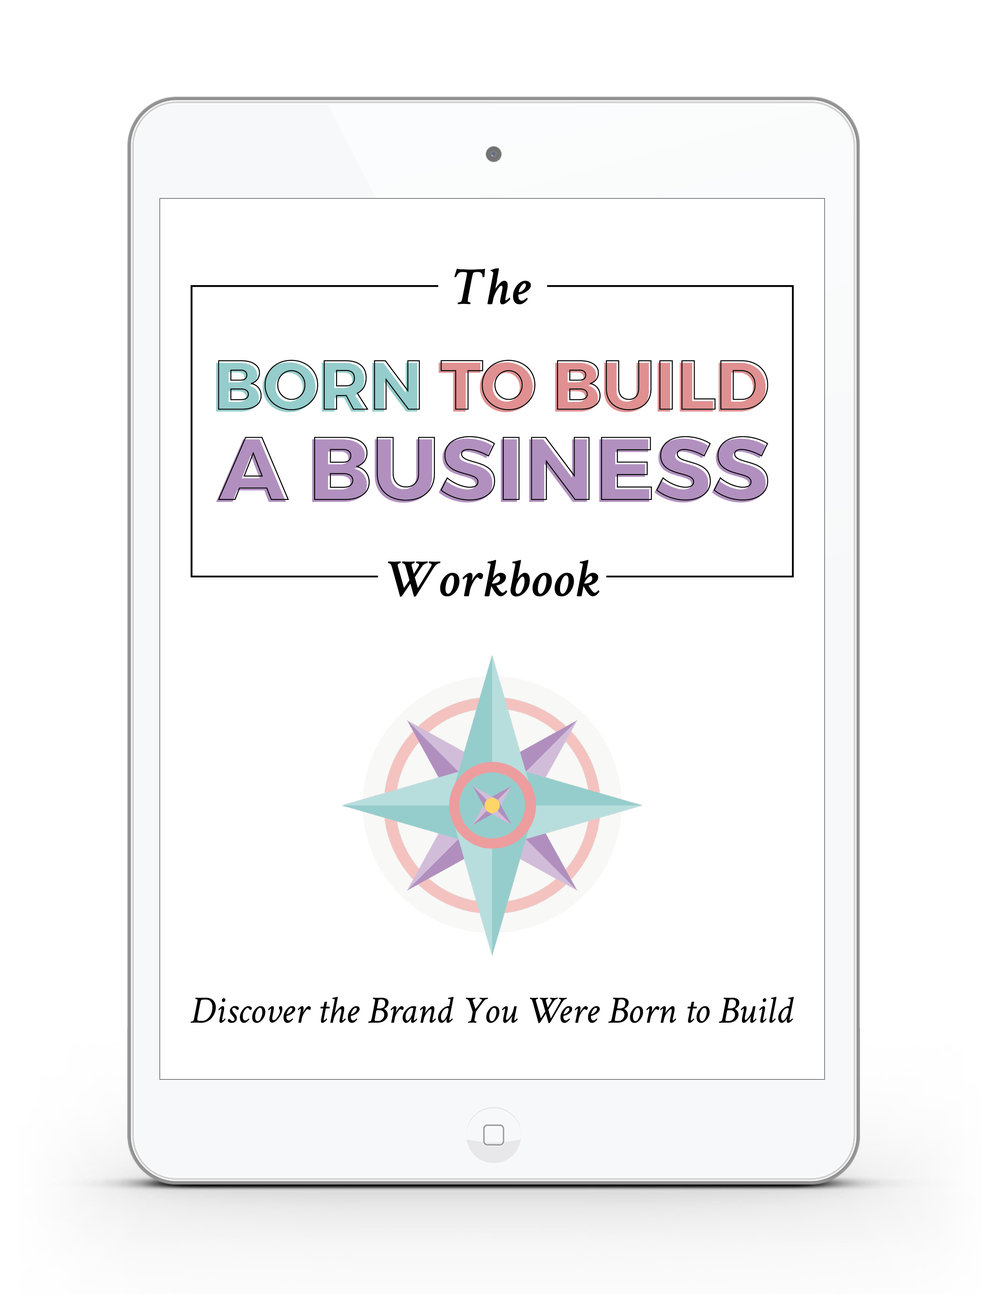 mockup-business-workbook-1.jpg